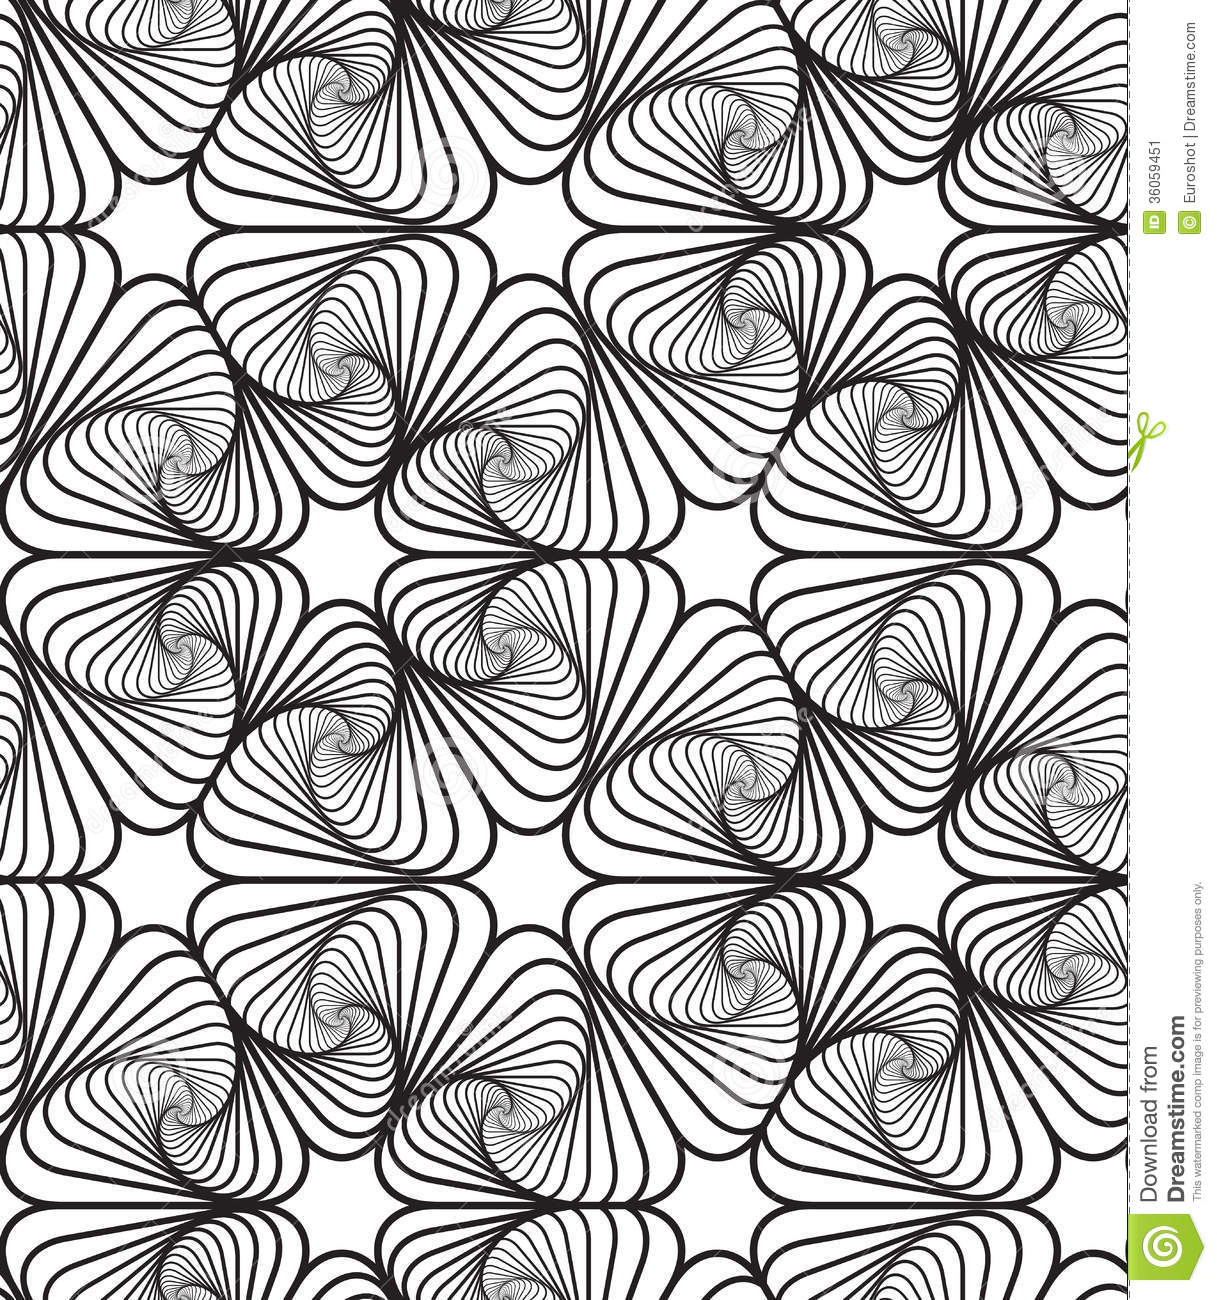 Photo Design Noir Et Blanc Fond Op Noir Et Blanc D Art Design Vector Seamless Pattern